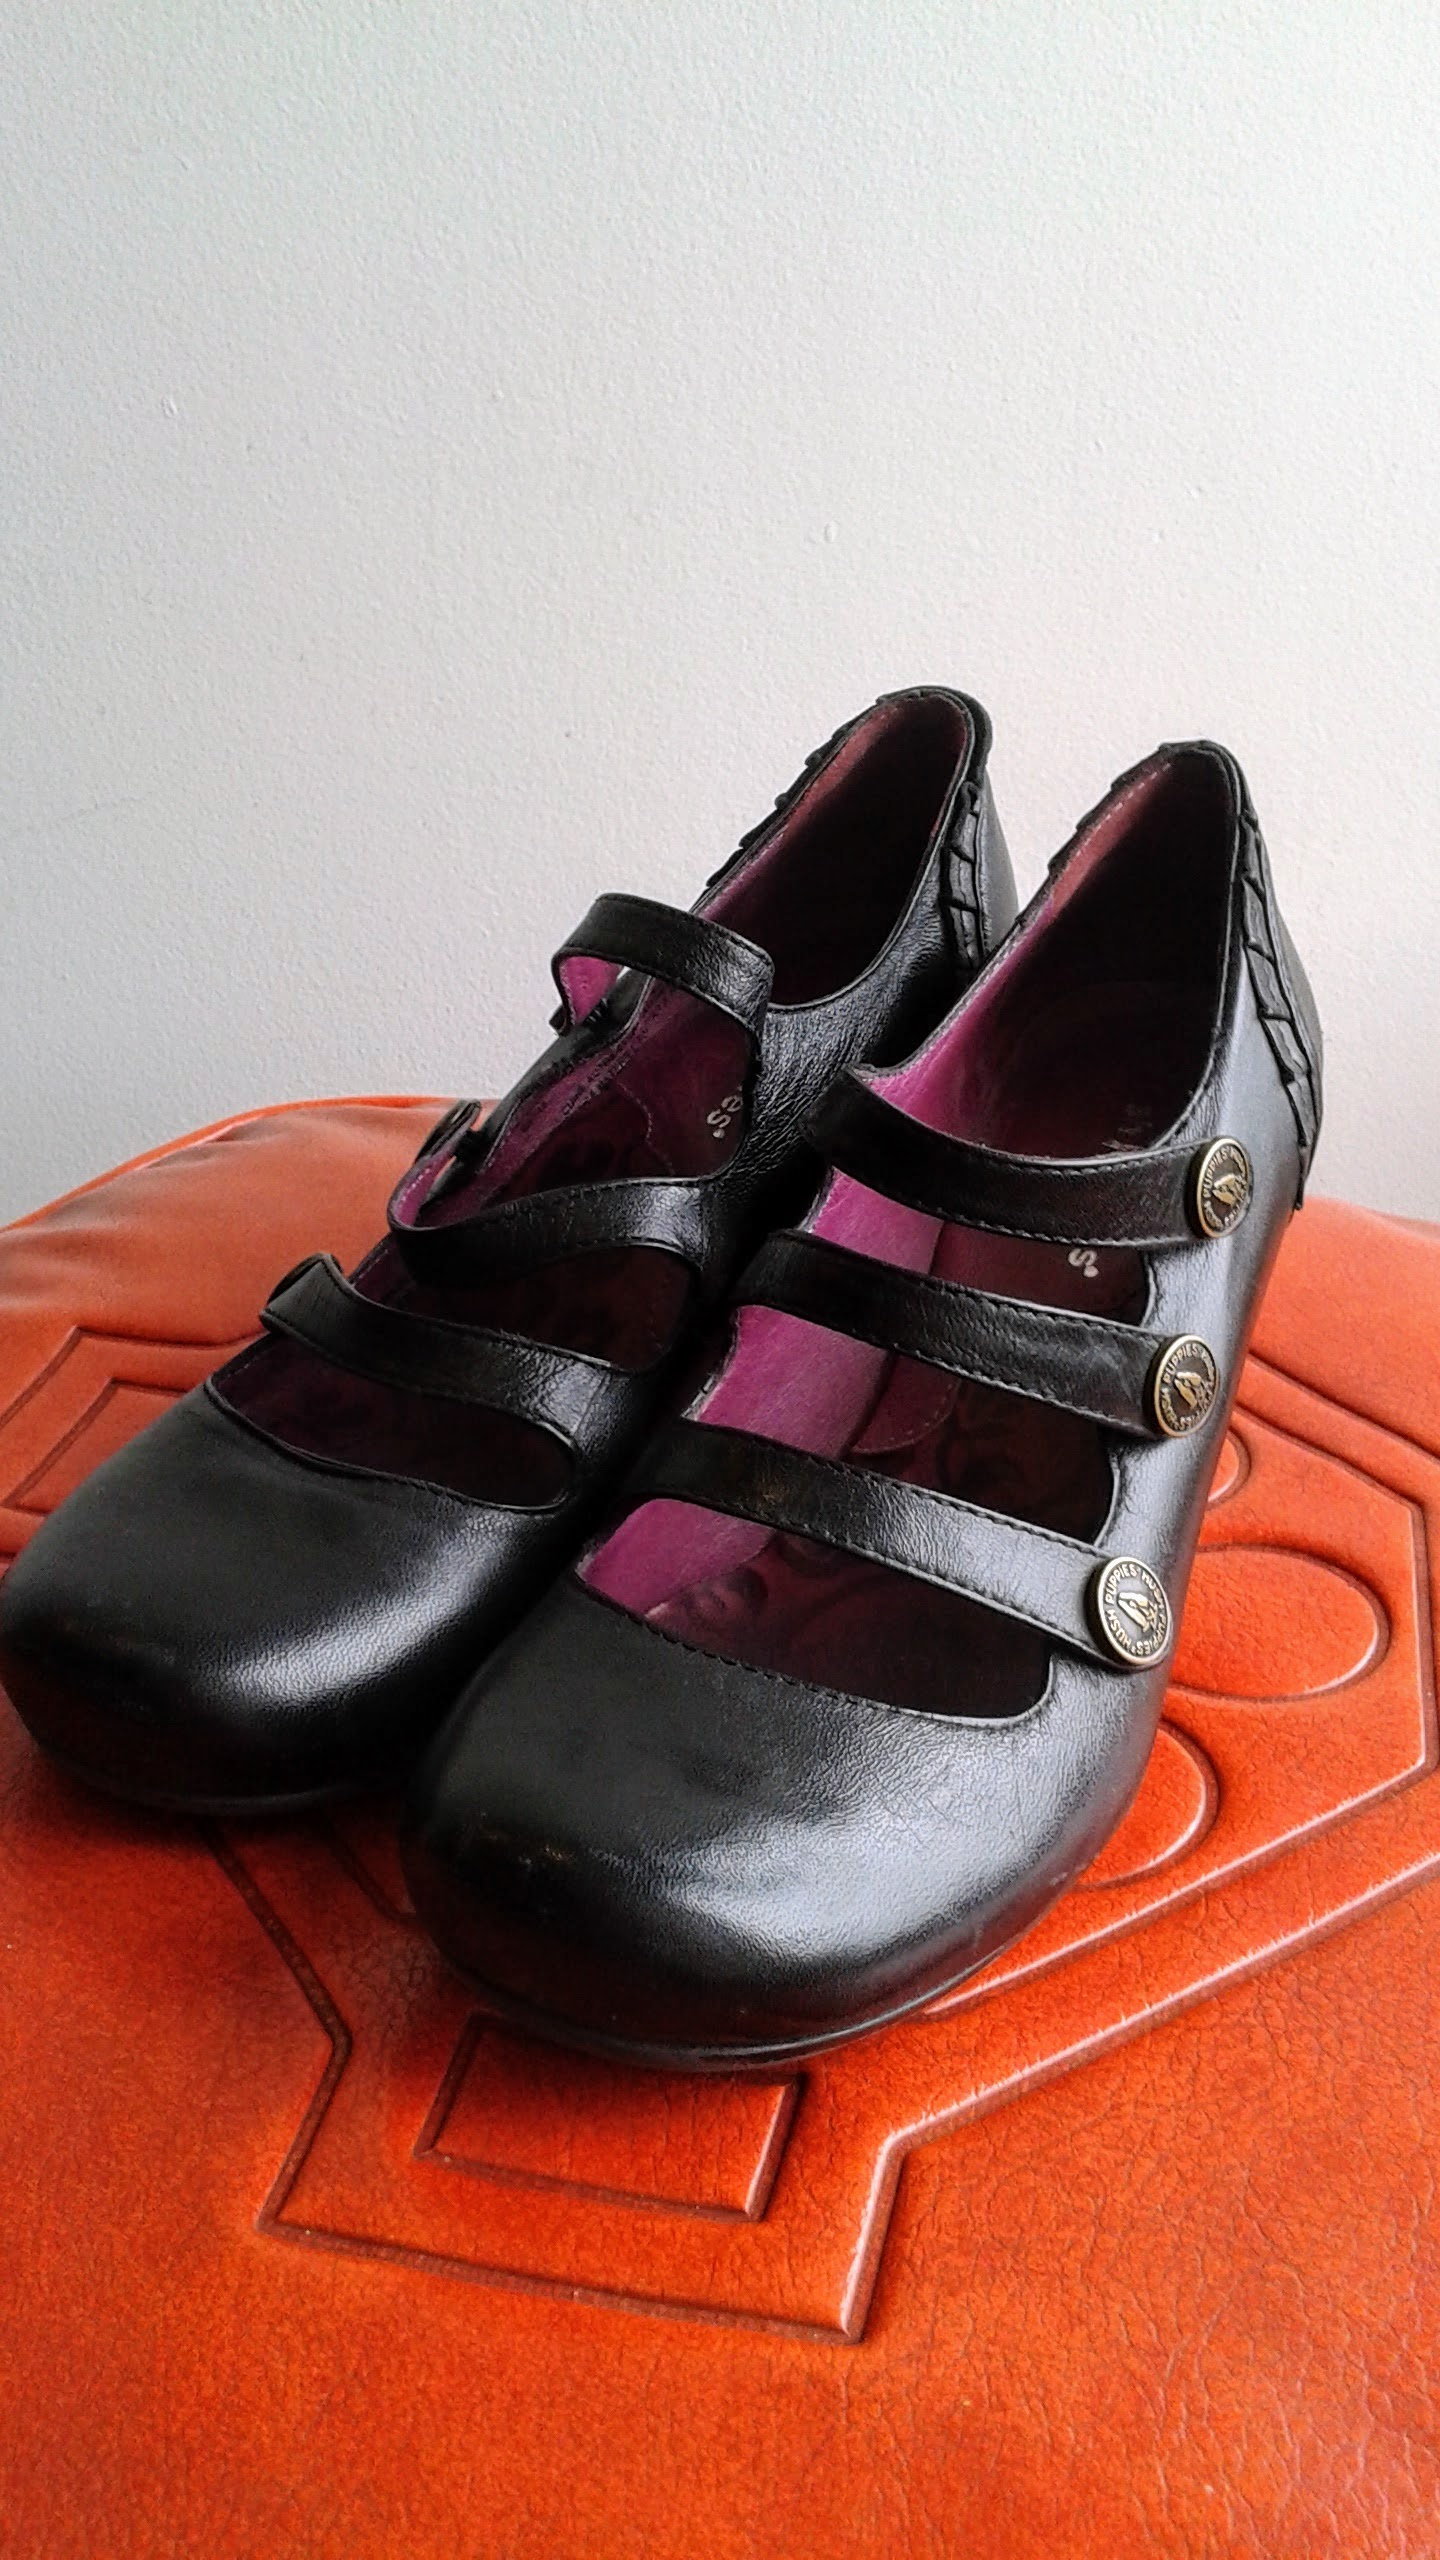 Hush Puppies shoes; S6, $30